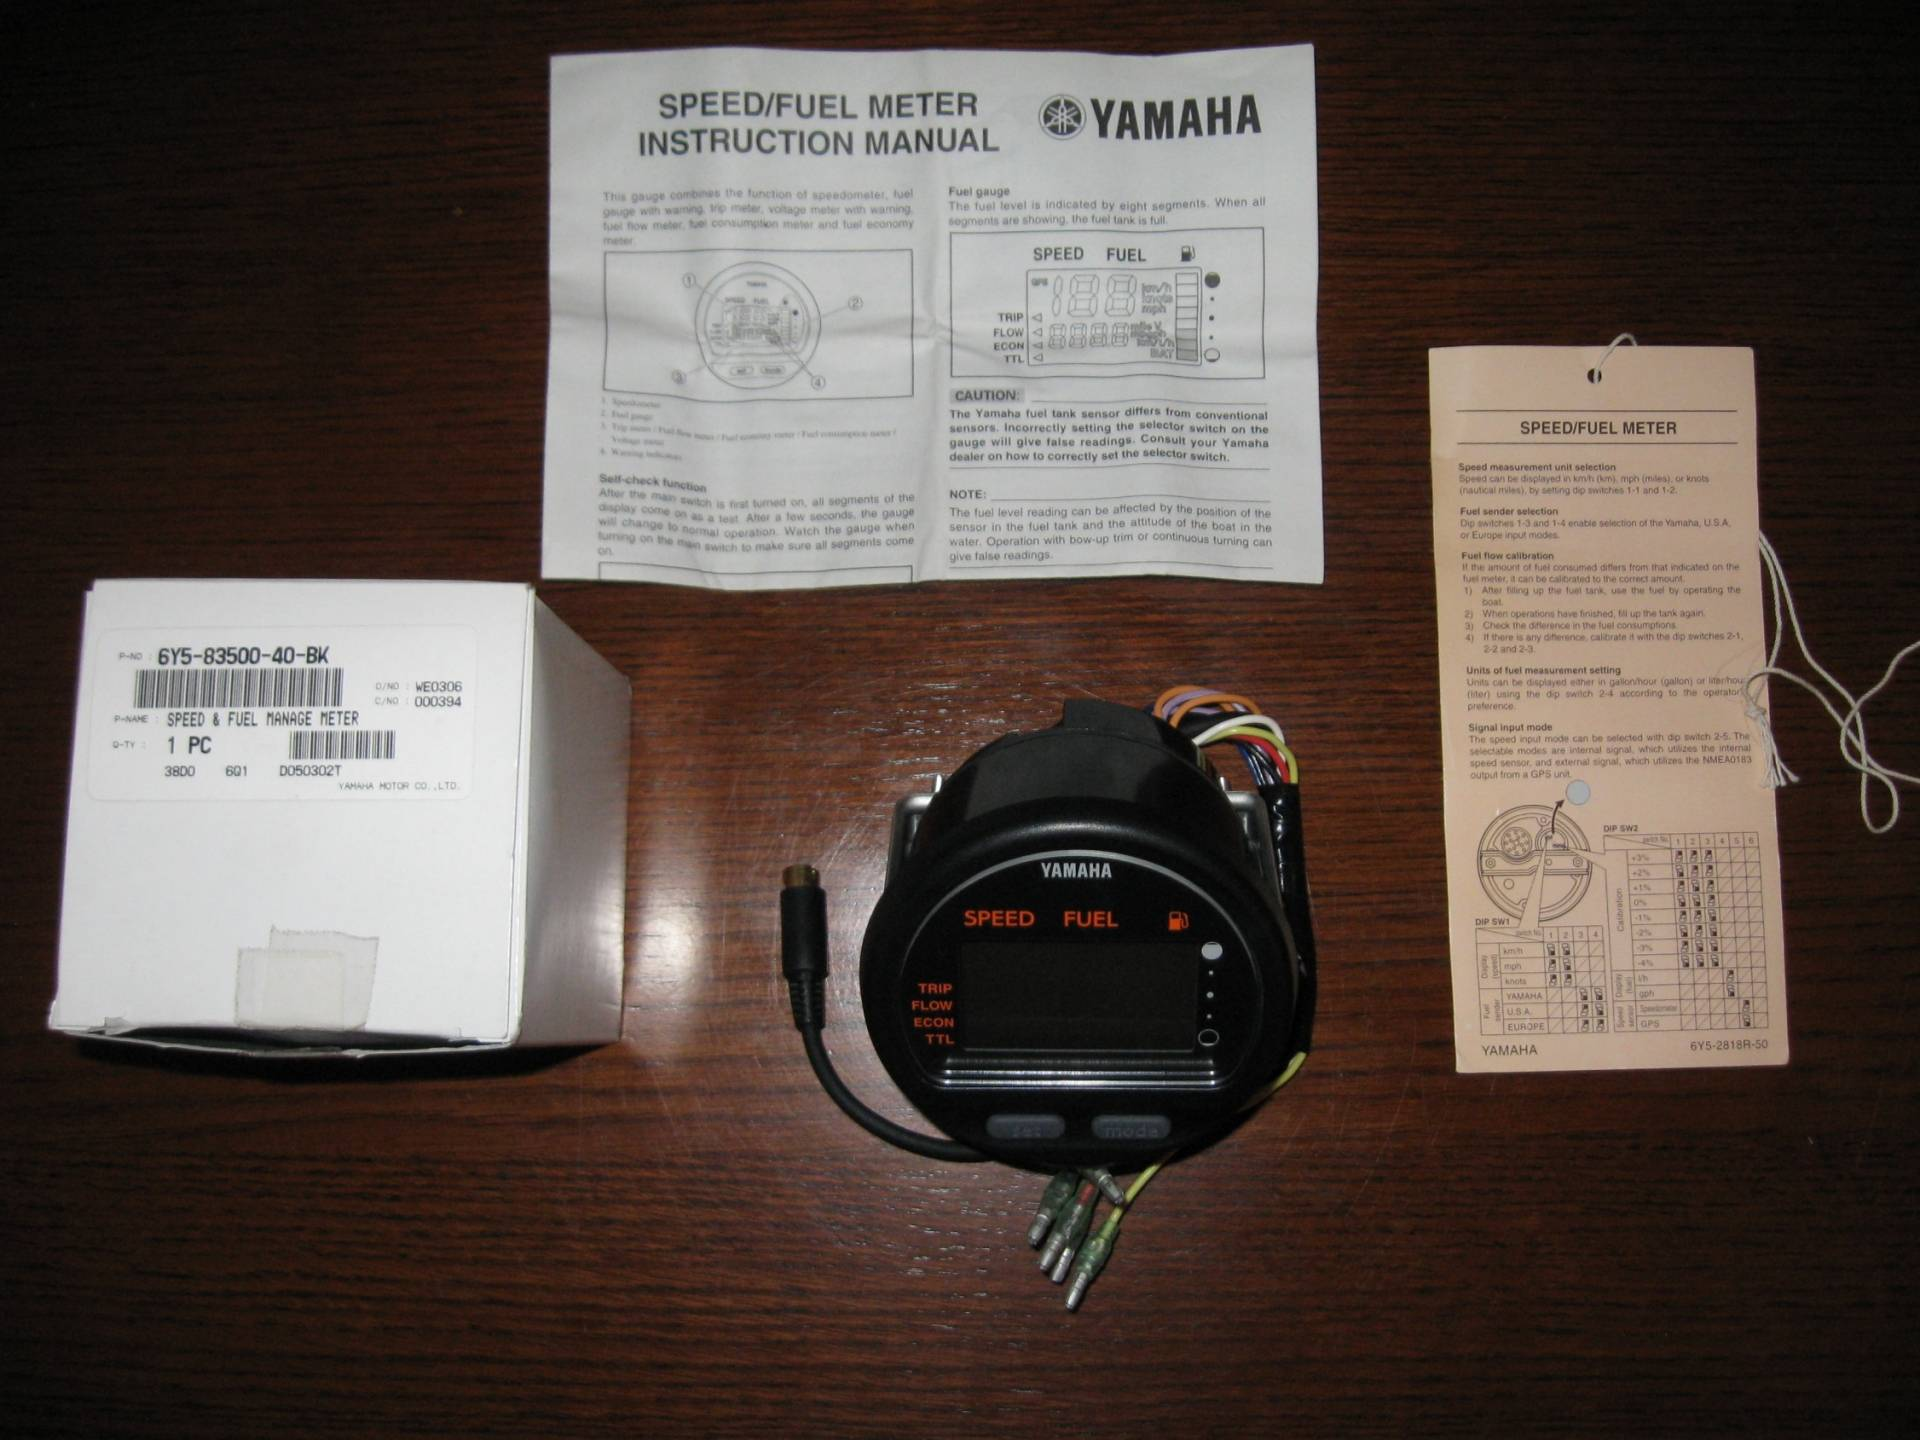 Yamaha 130 Outboard Fuel Gauge Manaegment Multifunction Wiring Diagram Speed And